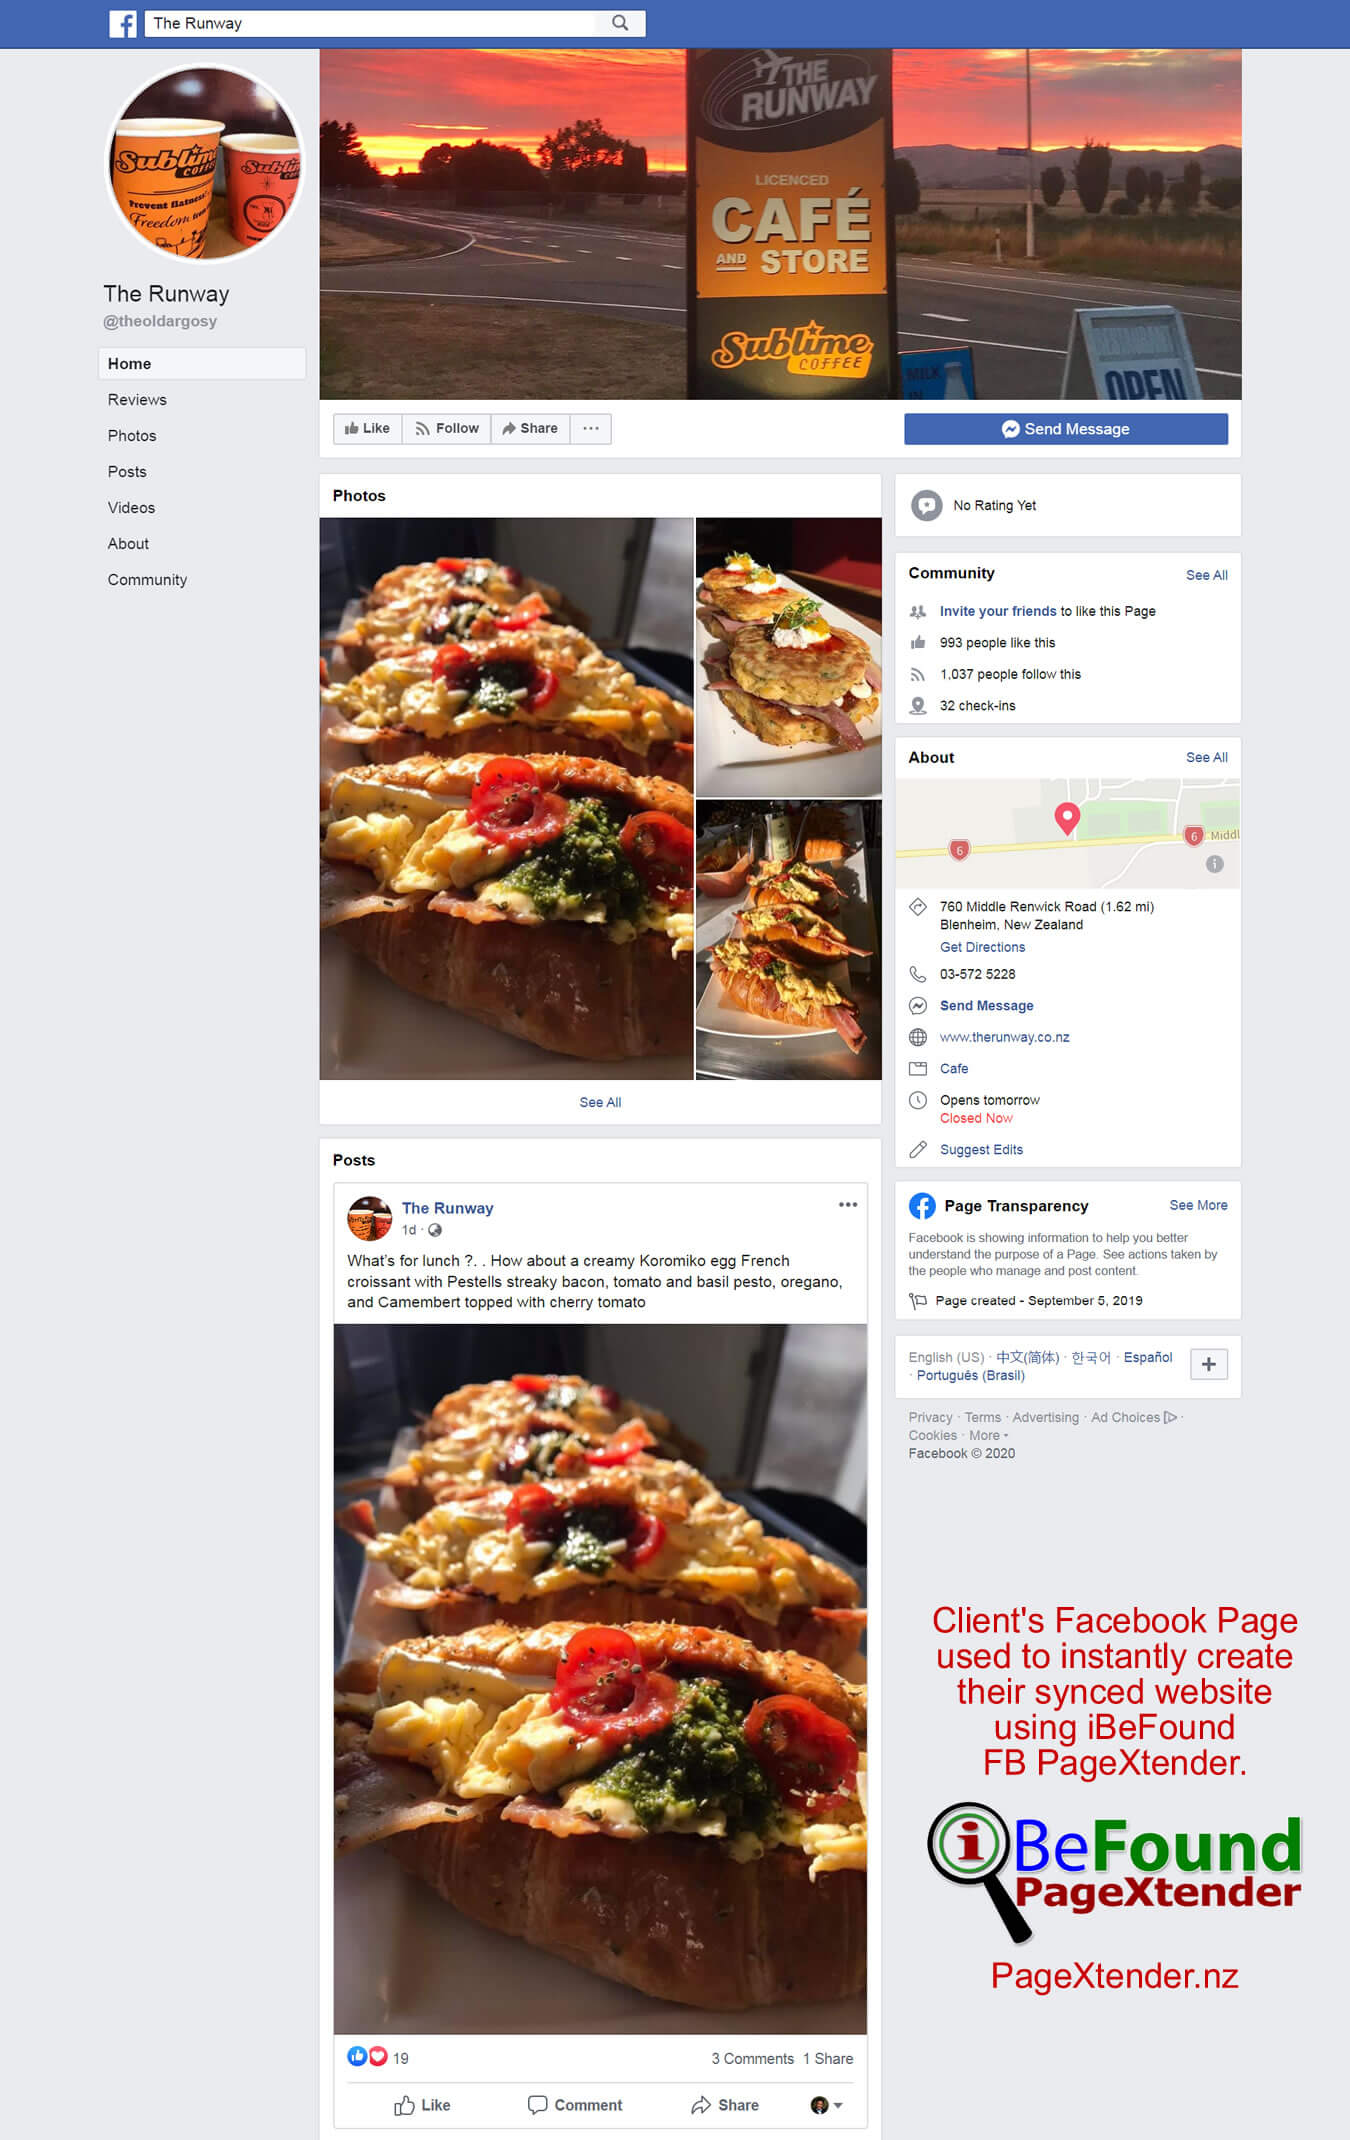 FB Page Of The Runway Cafe And Store Used For Instant Site Creation By IBeFound PageXtender NZ